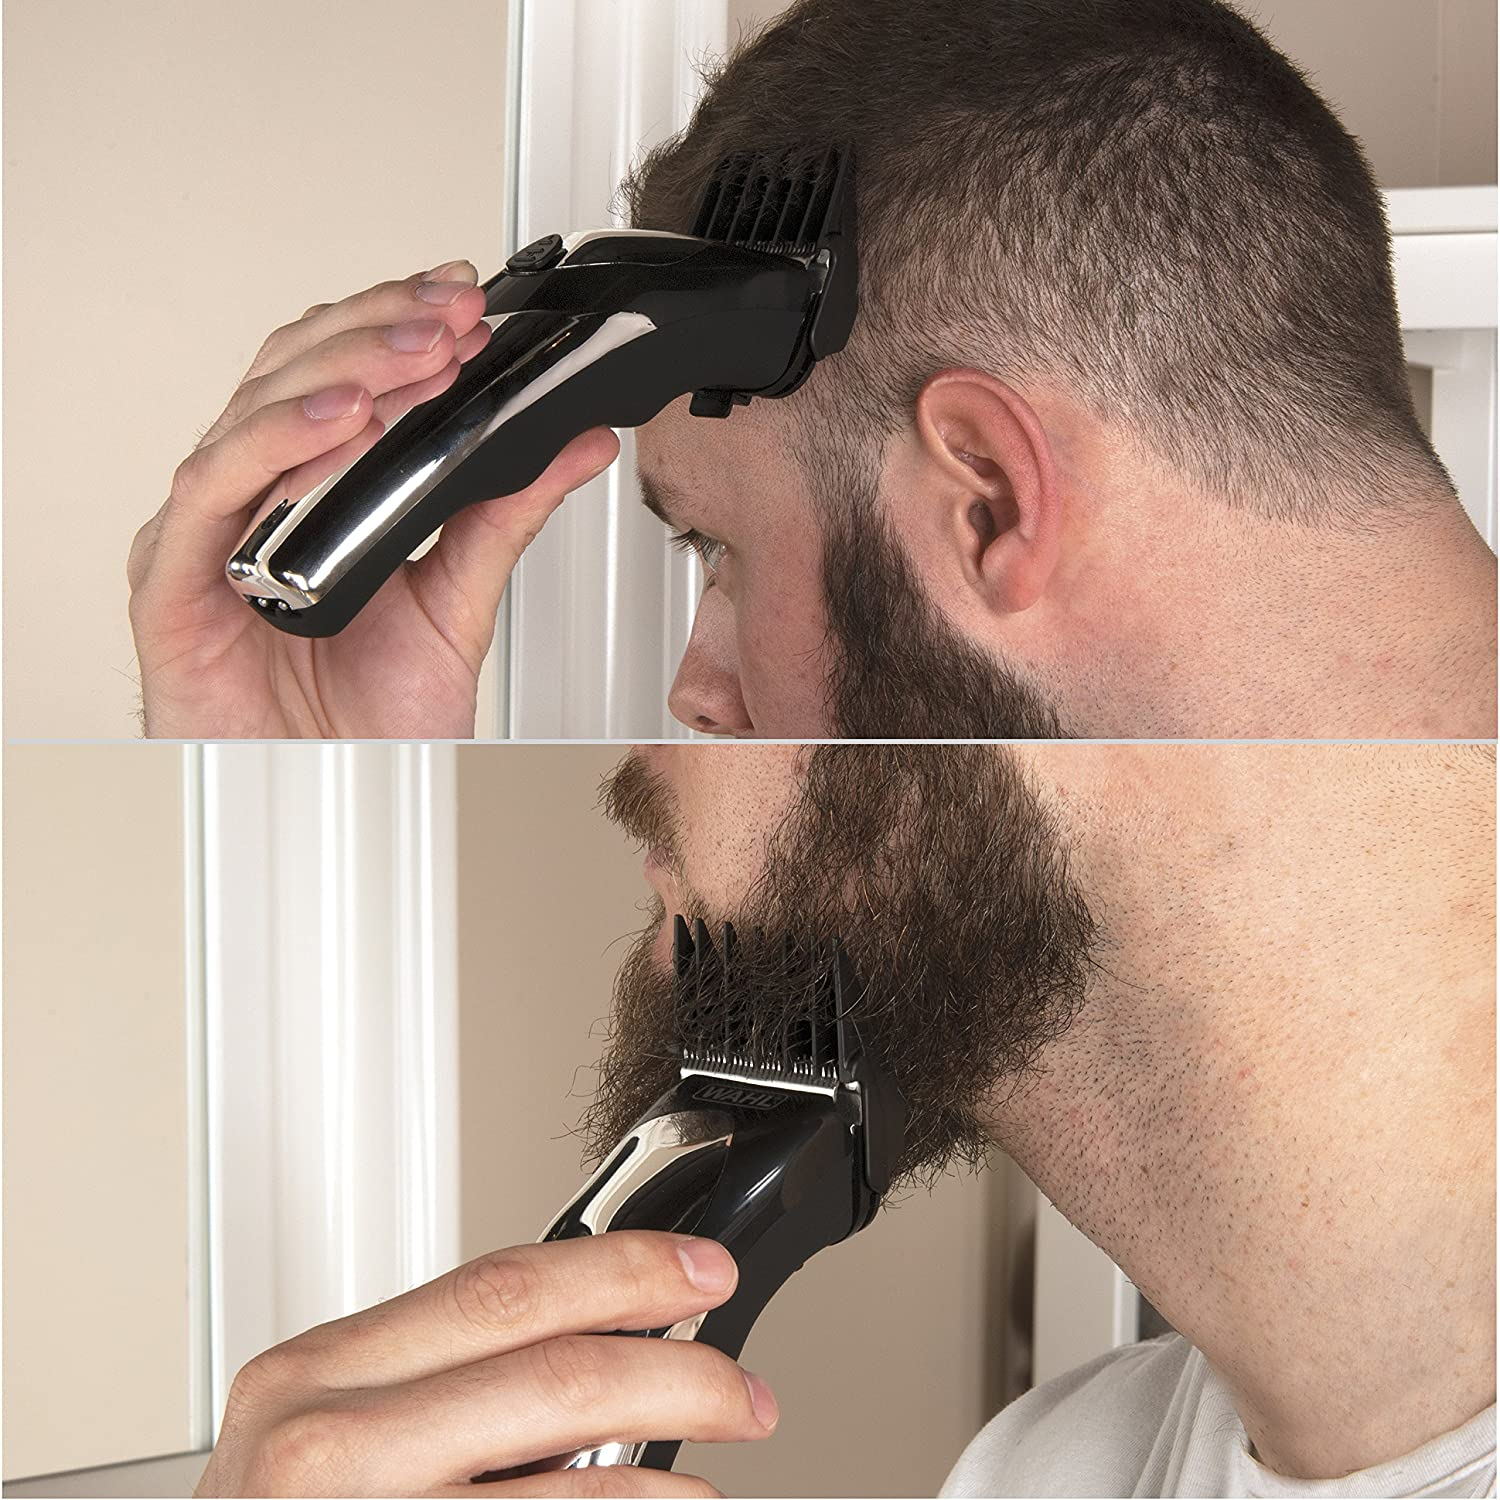 Wahl Haircut And Beard Trimmer Kit: Amazon.in: Beauty